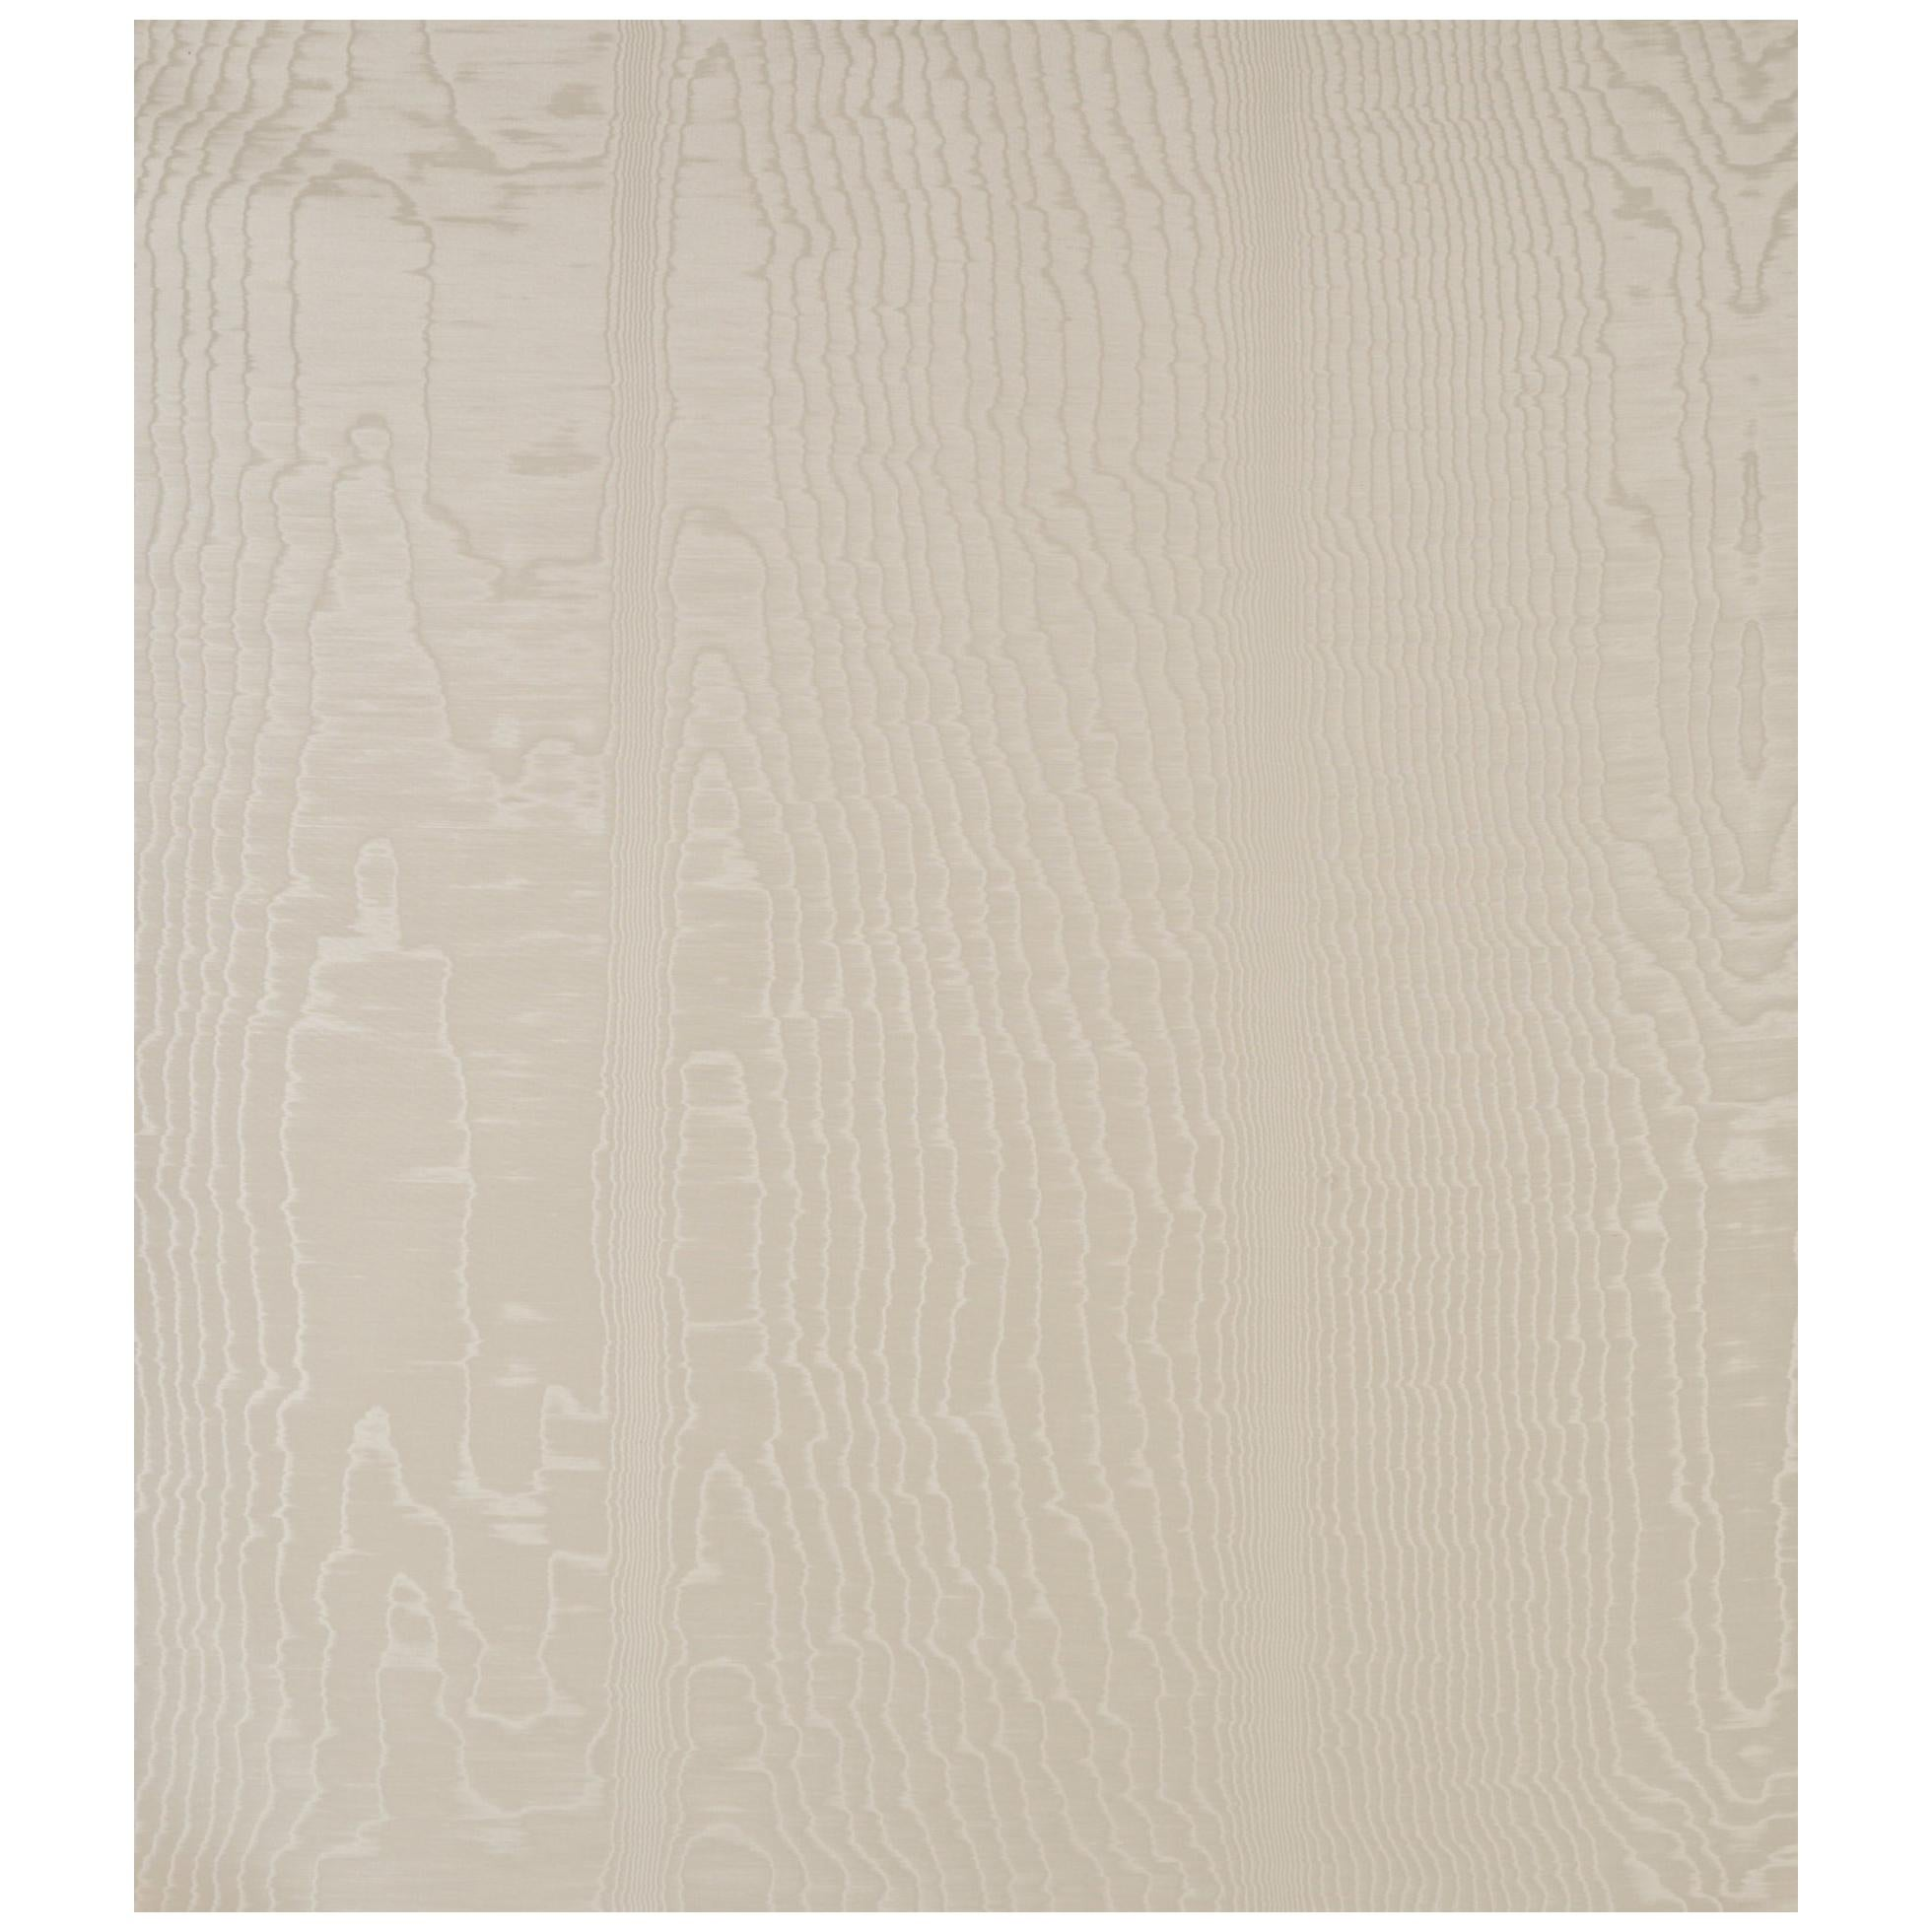 Schumacher Moire Wallcovering in Parchment